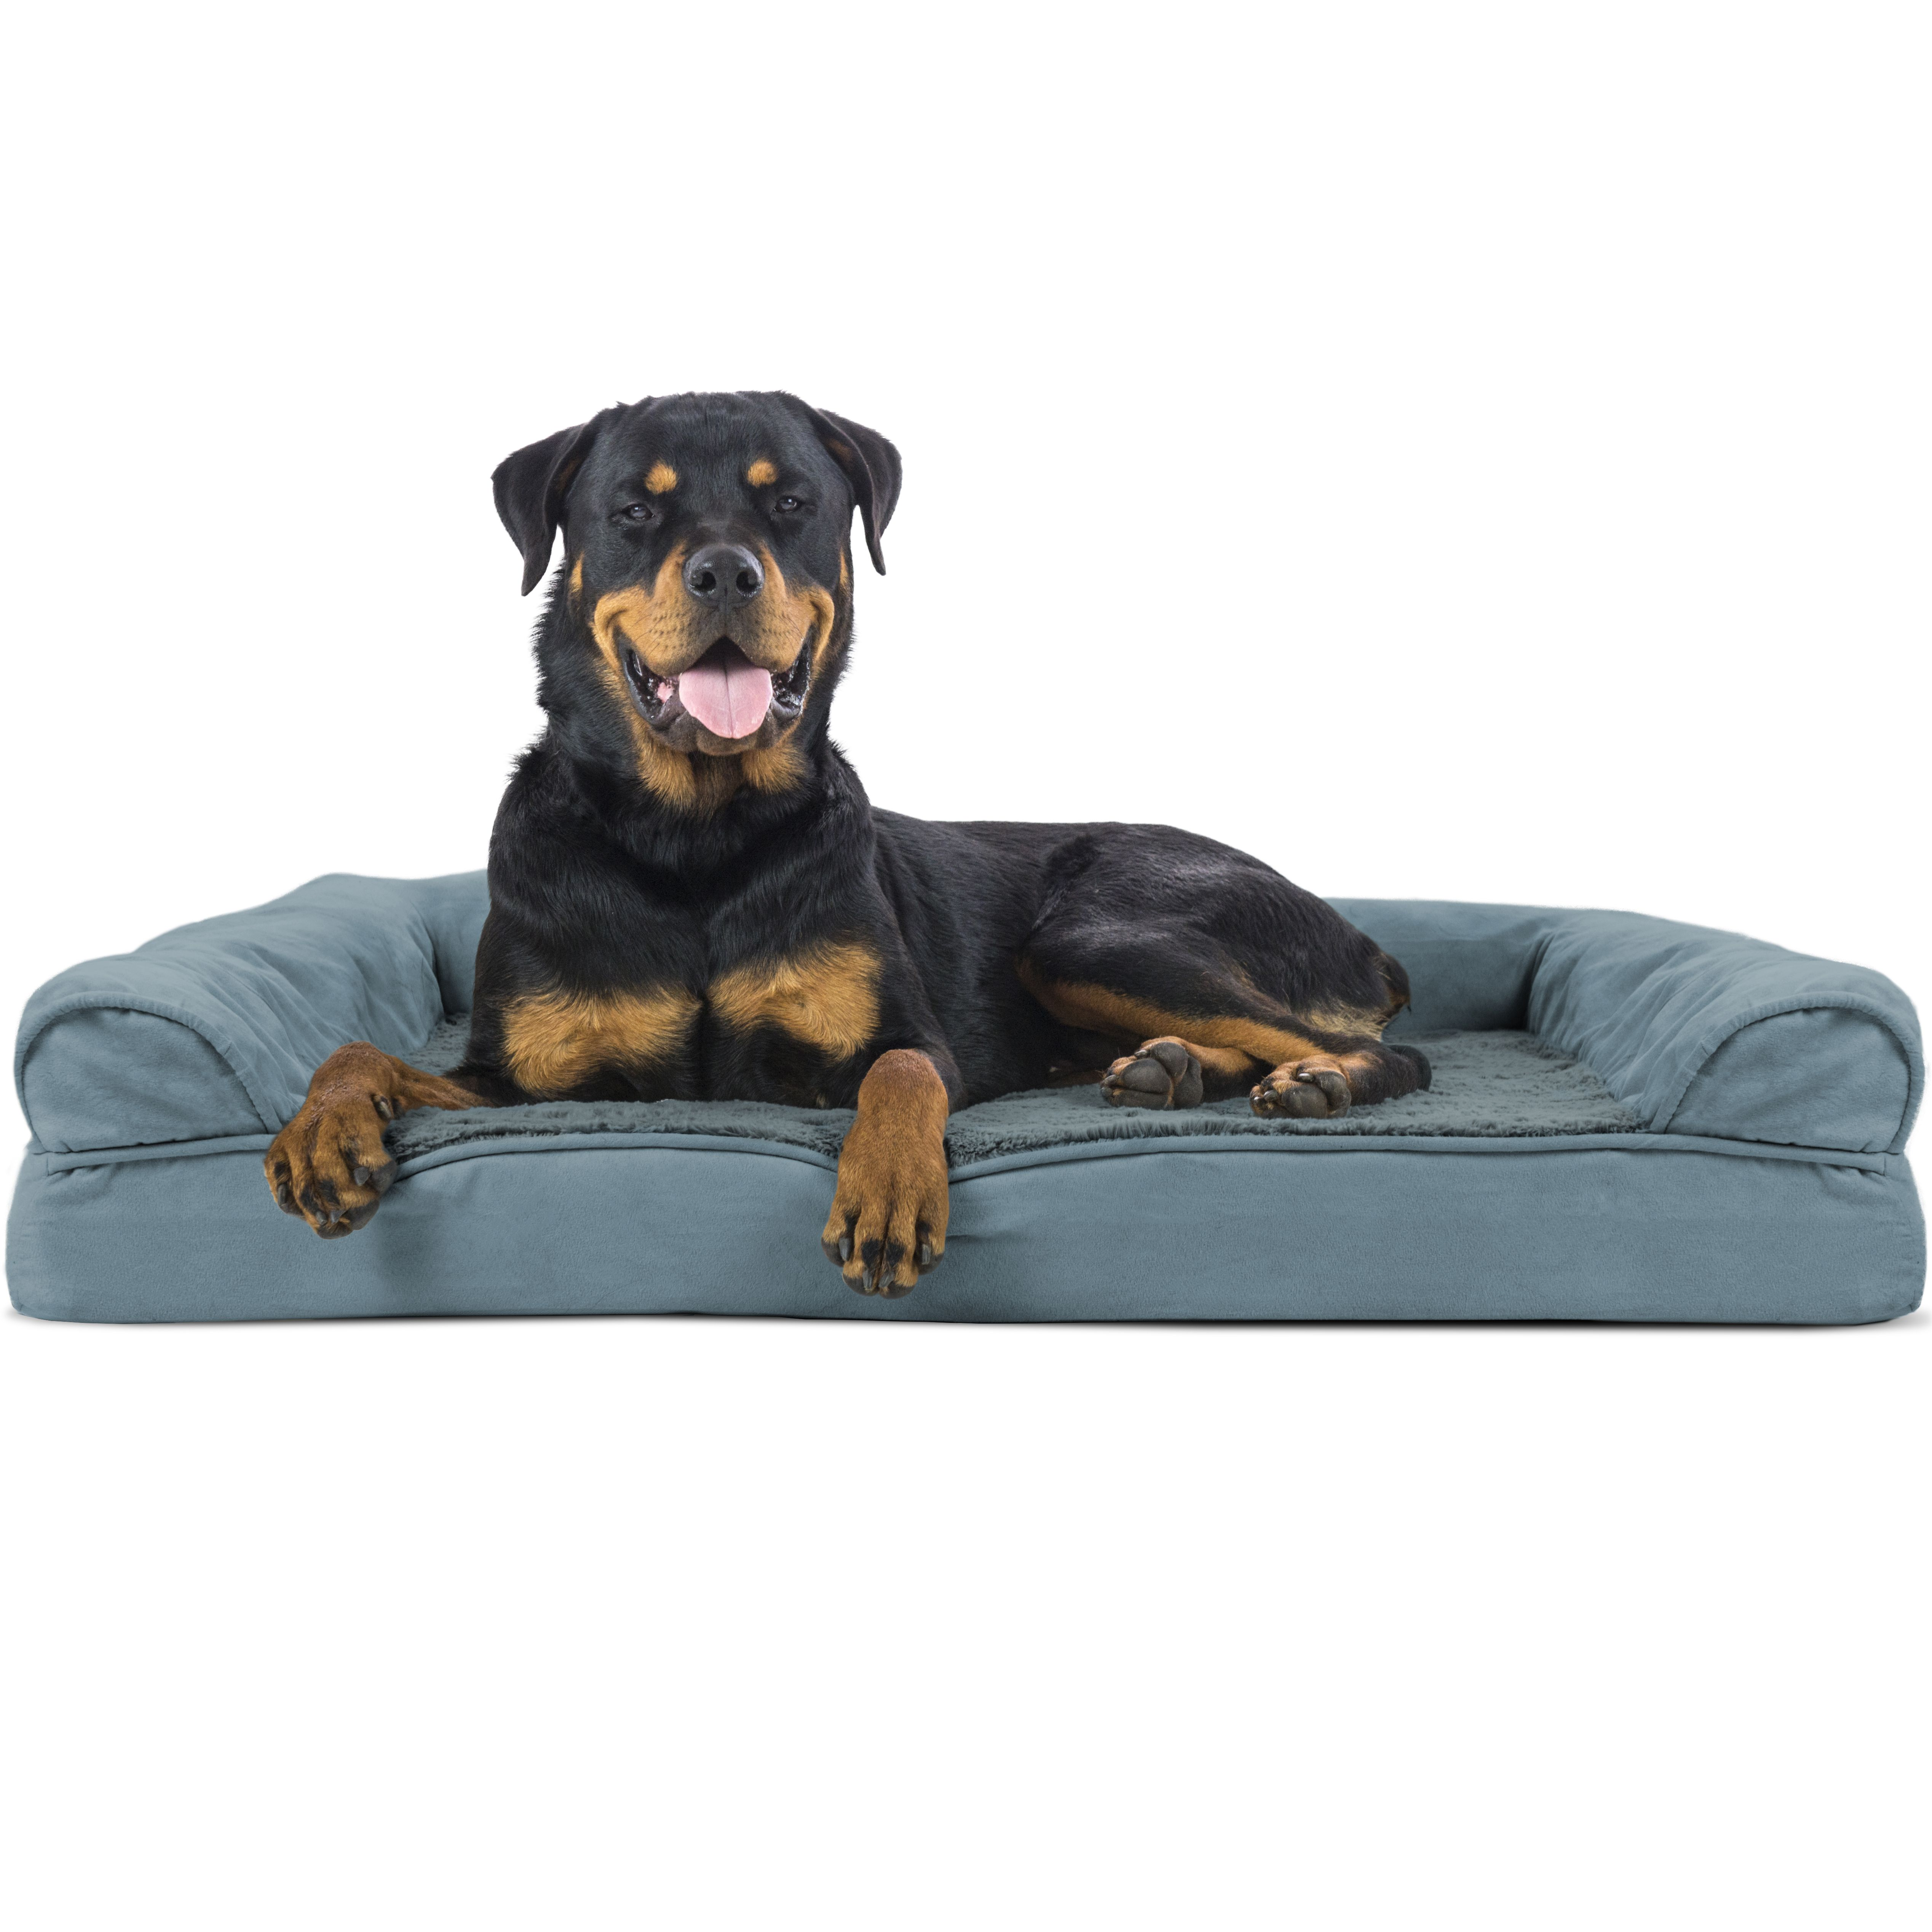 Furhaven Pet Dog Bed Orthopedic Ultra Plush Sofa Style Couch Pet Bed For Dogs Cats Deep Pool Jumbo Walmart Com Cool Dog Beds Dog Pet Beds Orthopedic Dog Bed